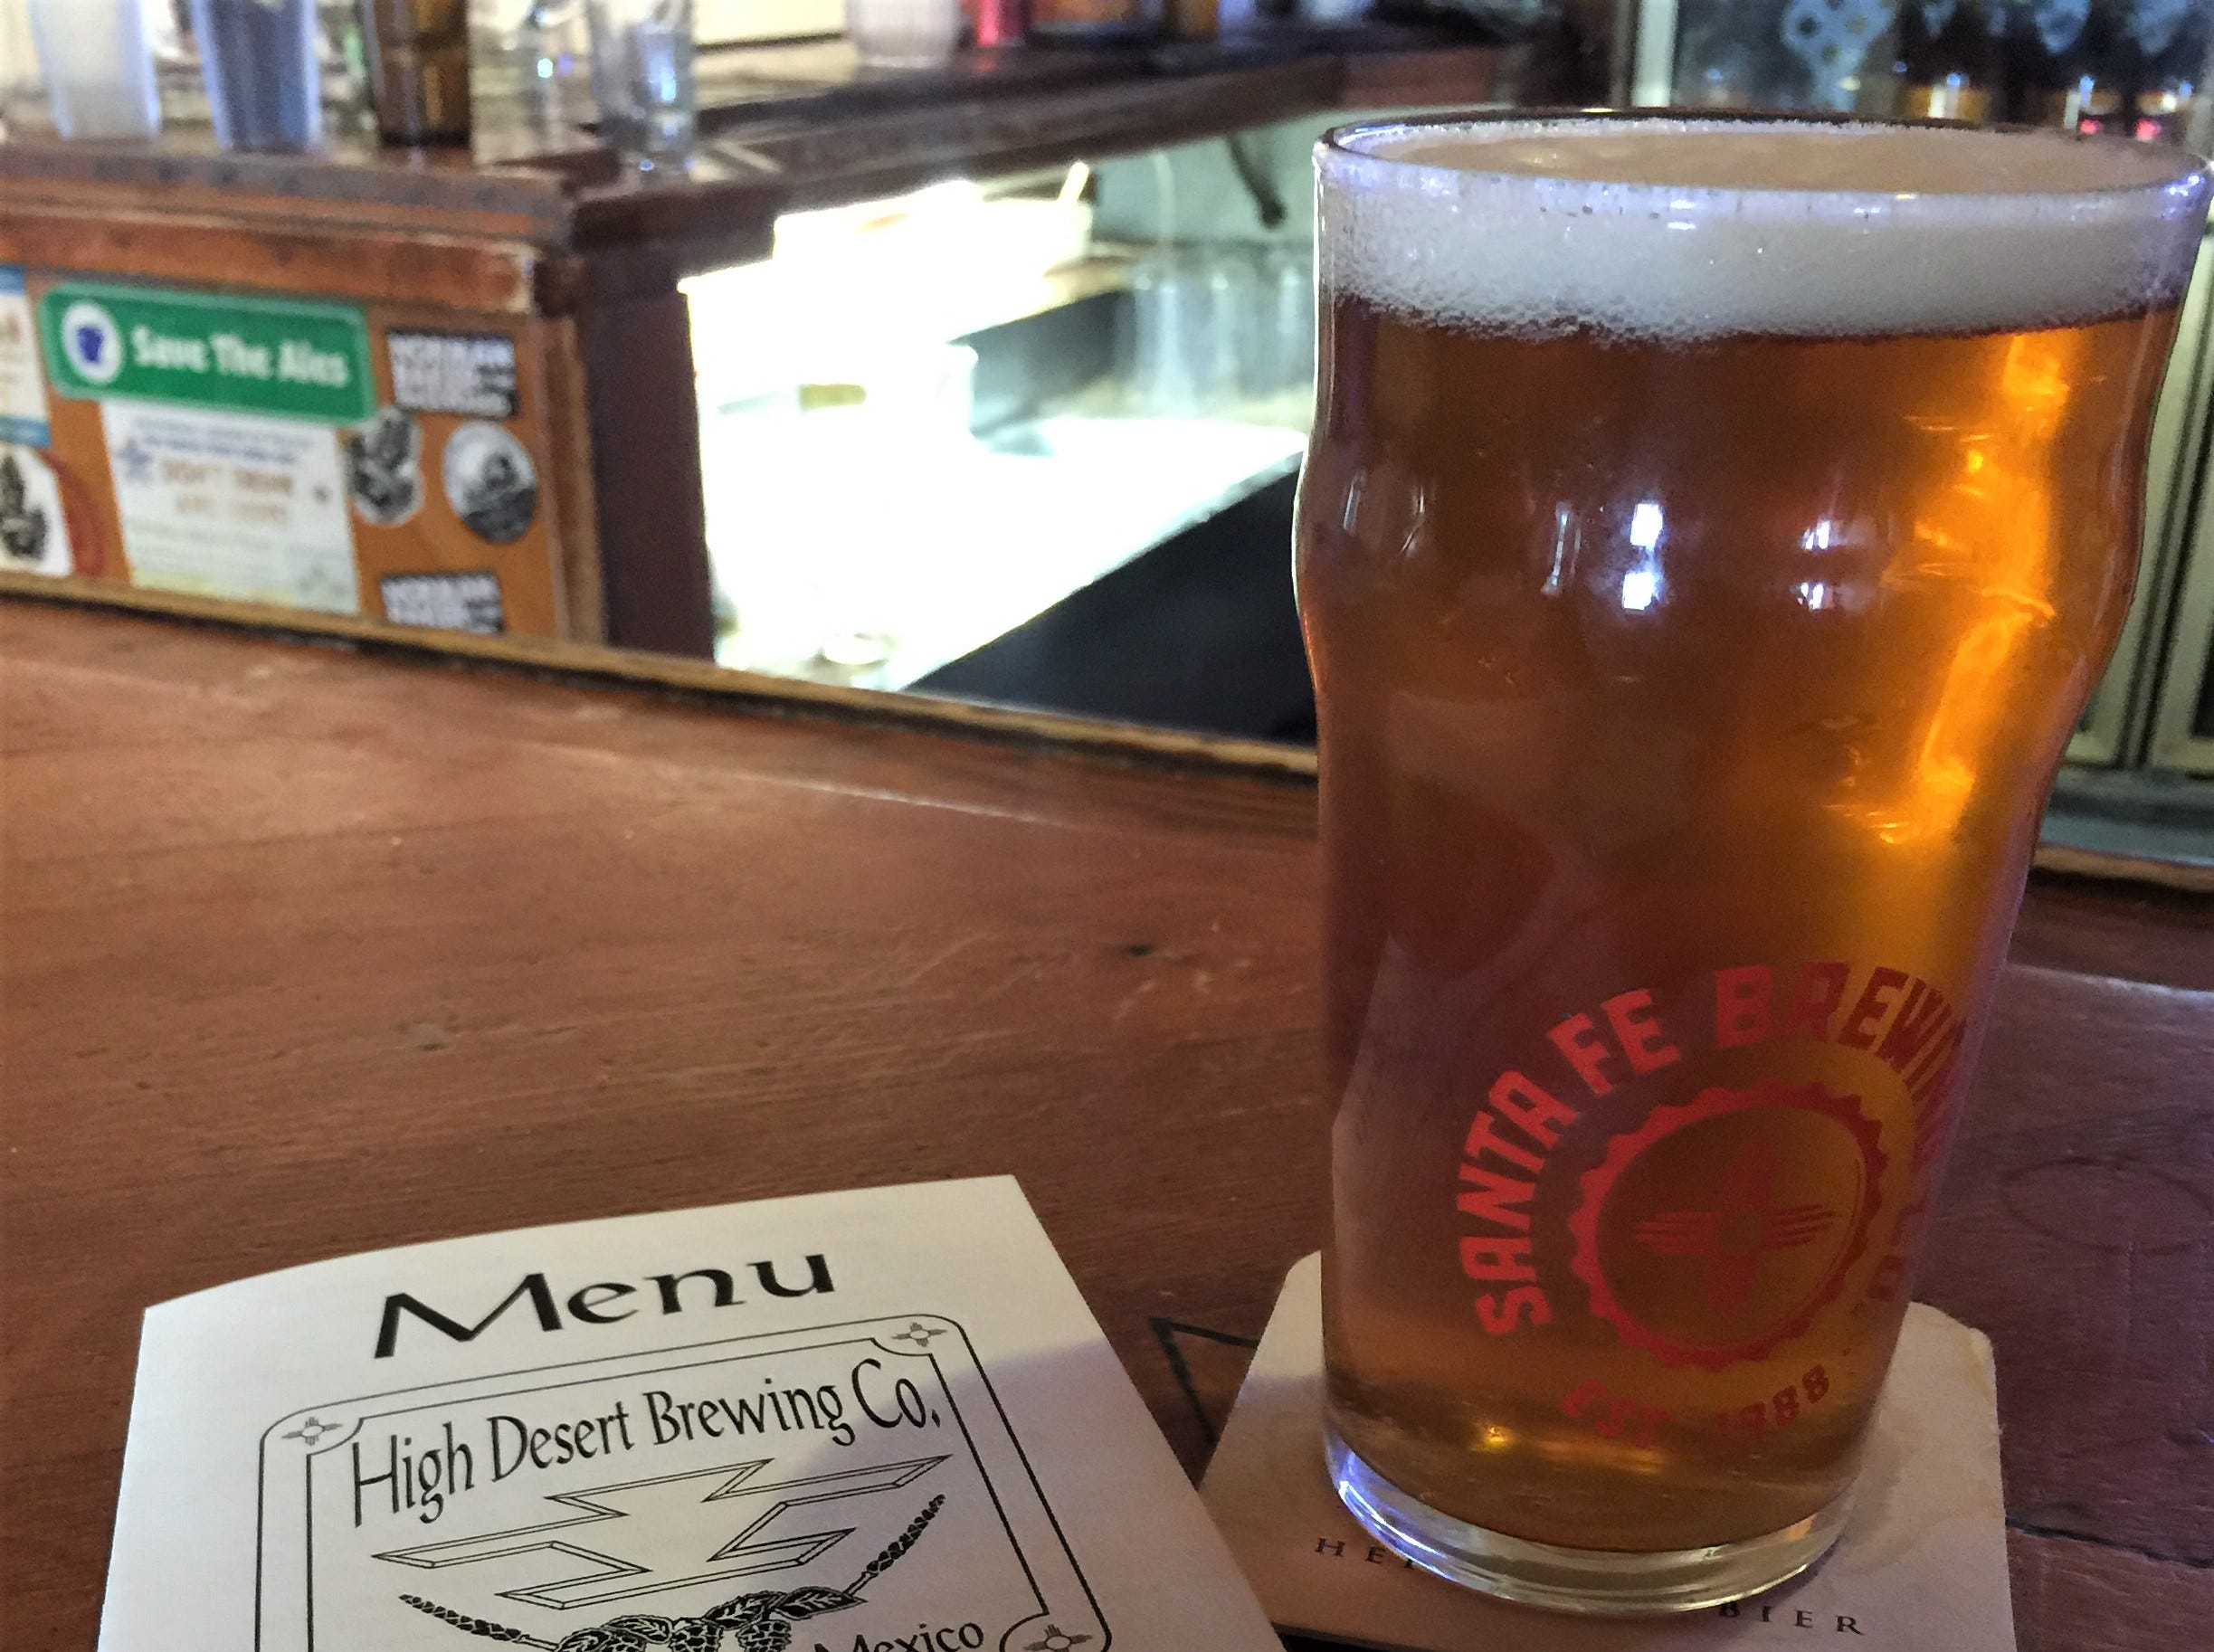 High Desert Brewing Co. offers a full menu which includes everything from burgers, green chile stew, quesadillas and award winning nachos!